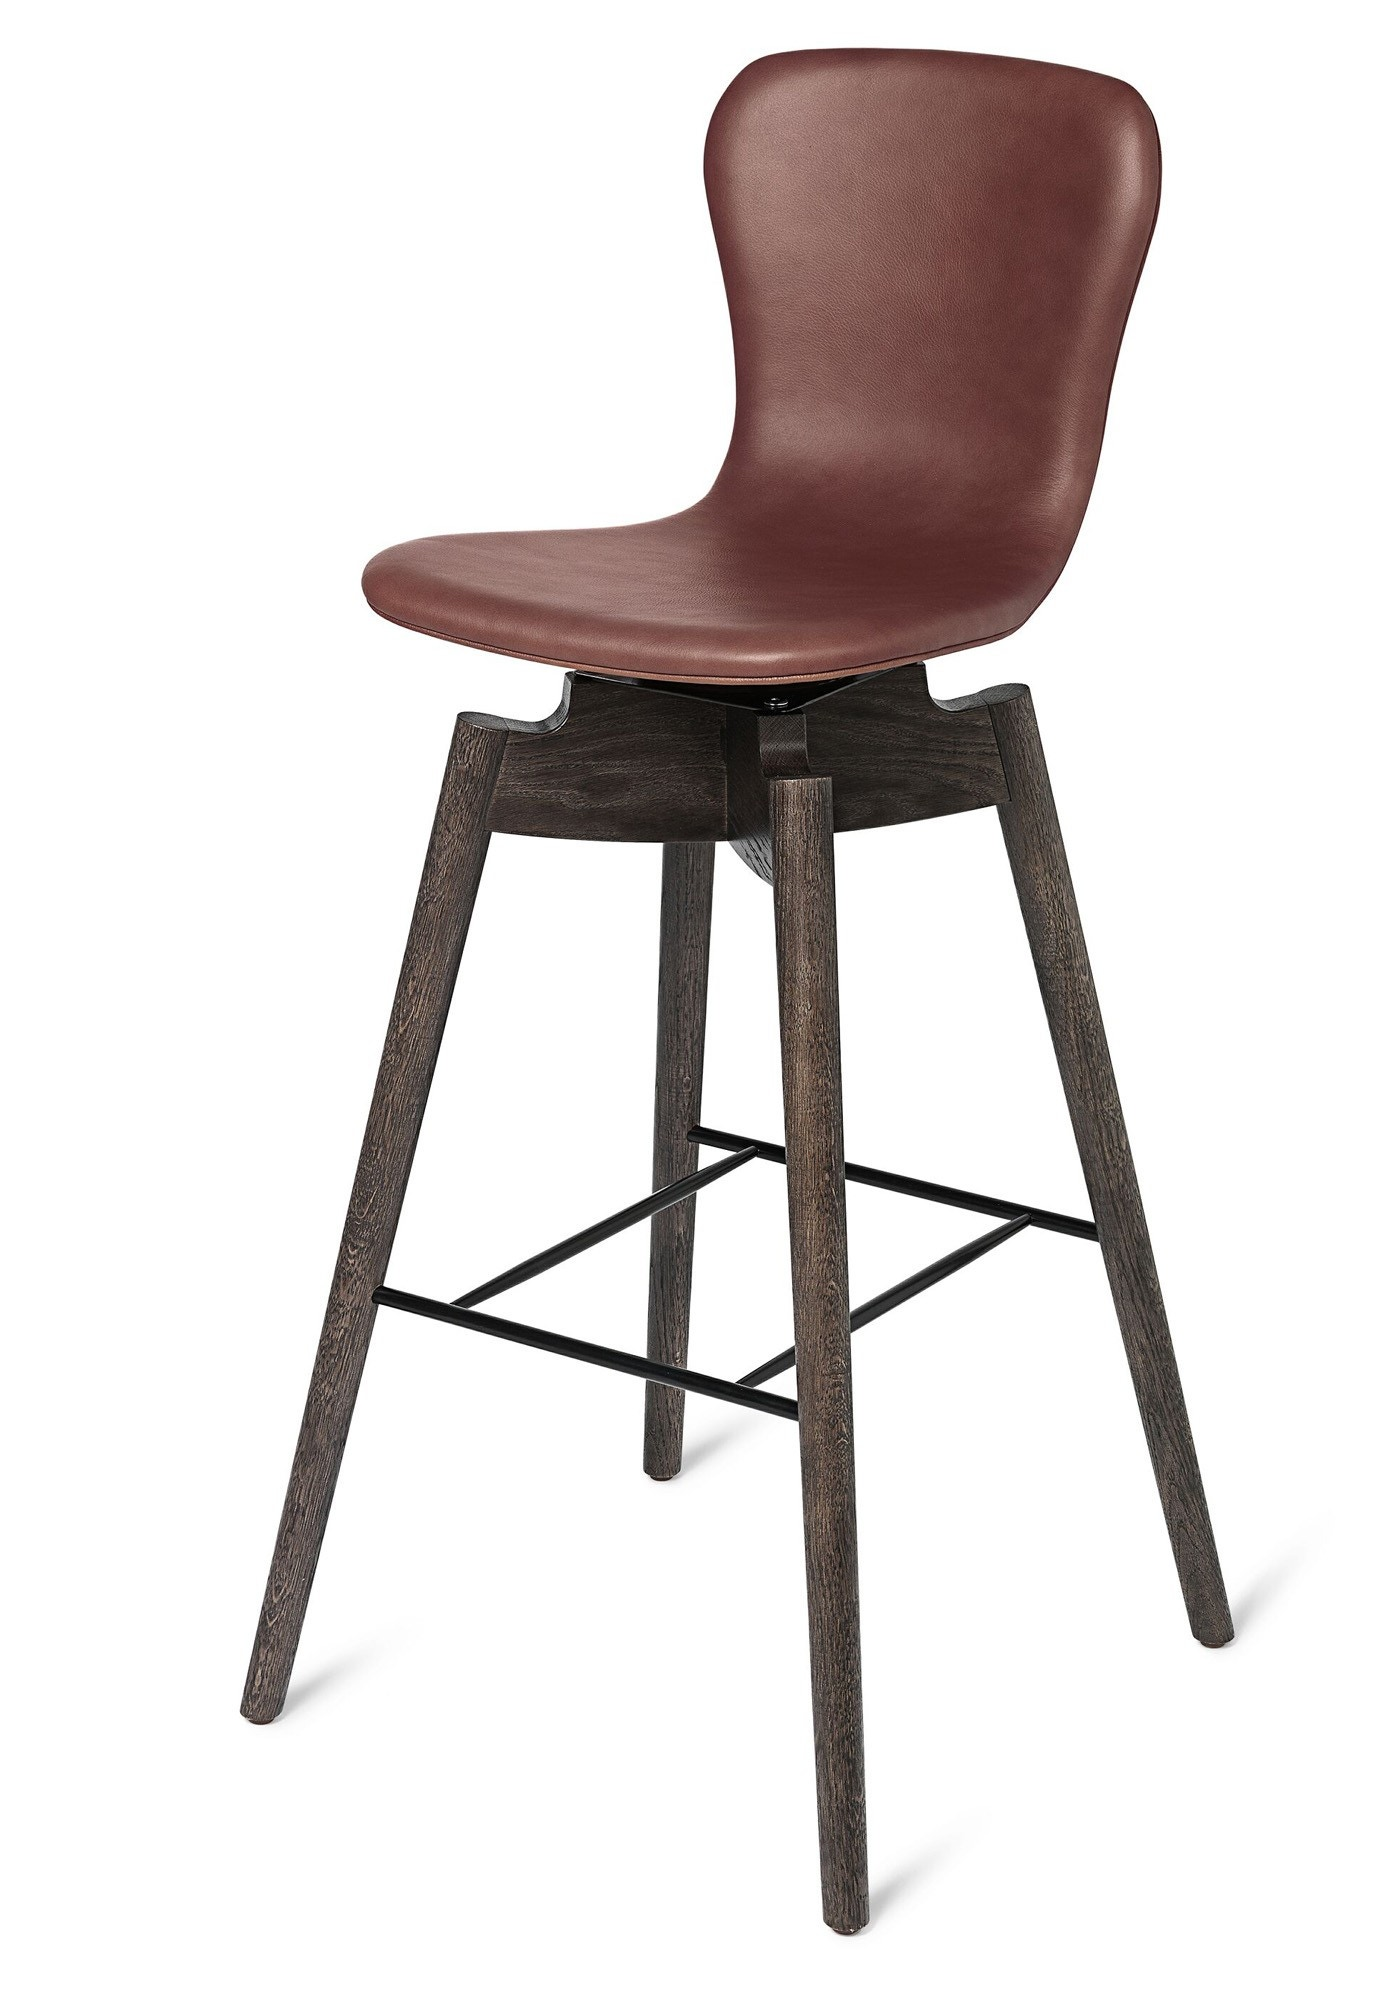 Bar Stools With Arms Canada Bruin Blog